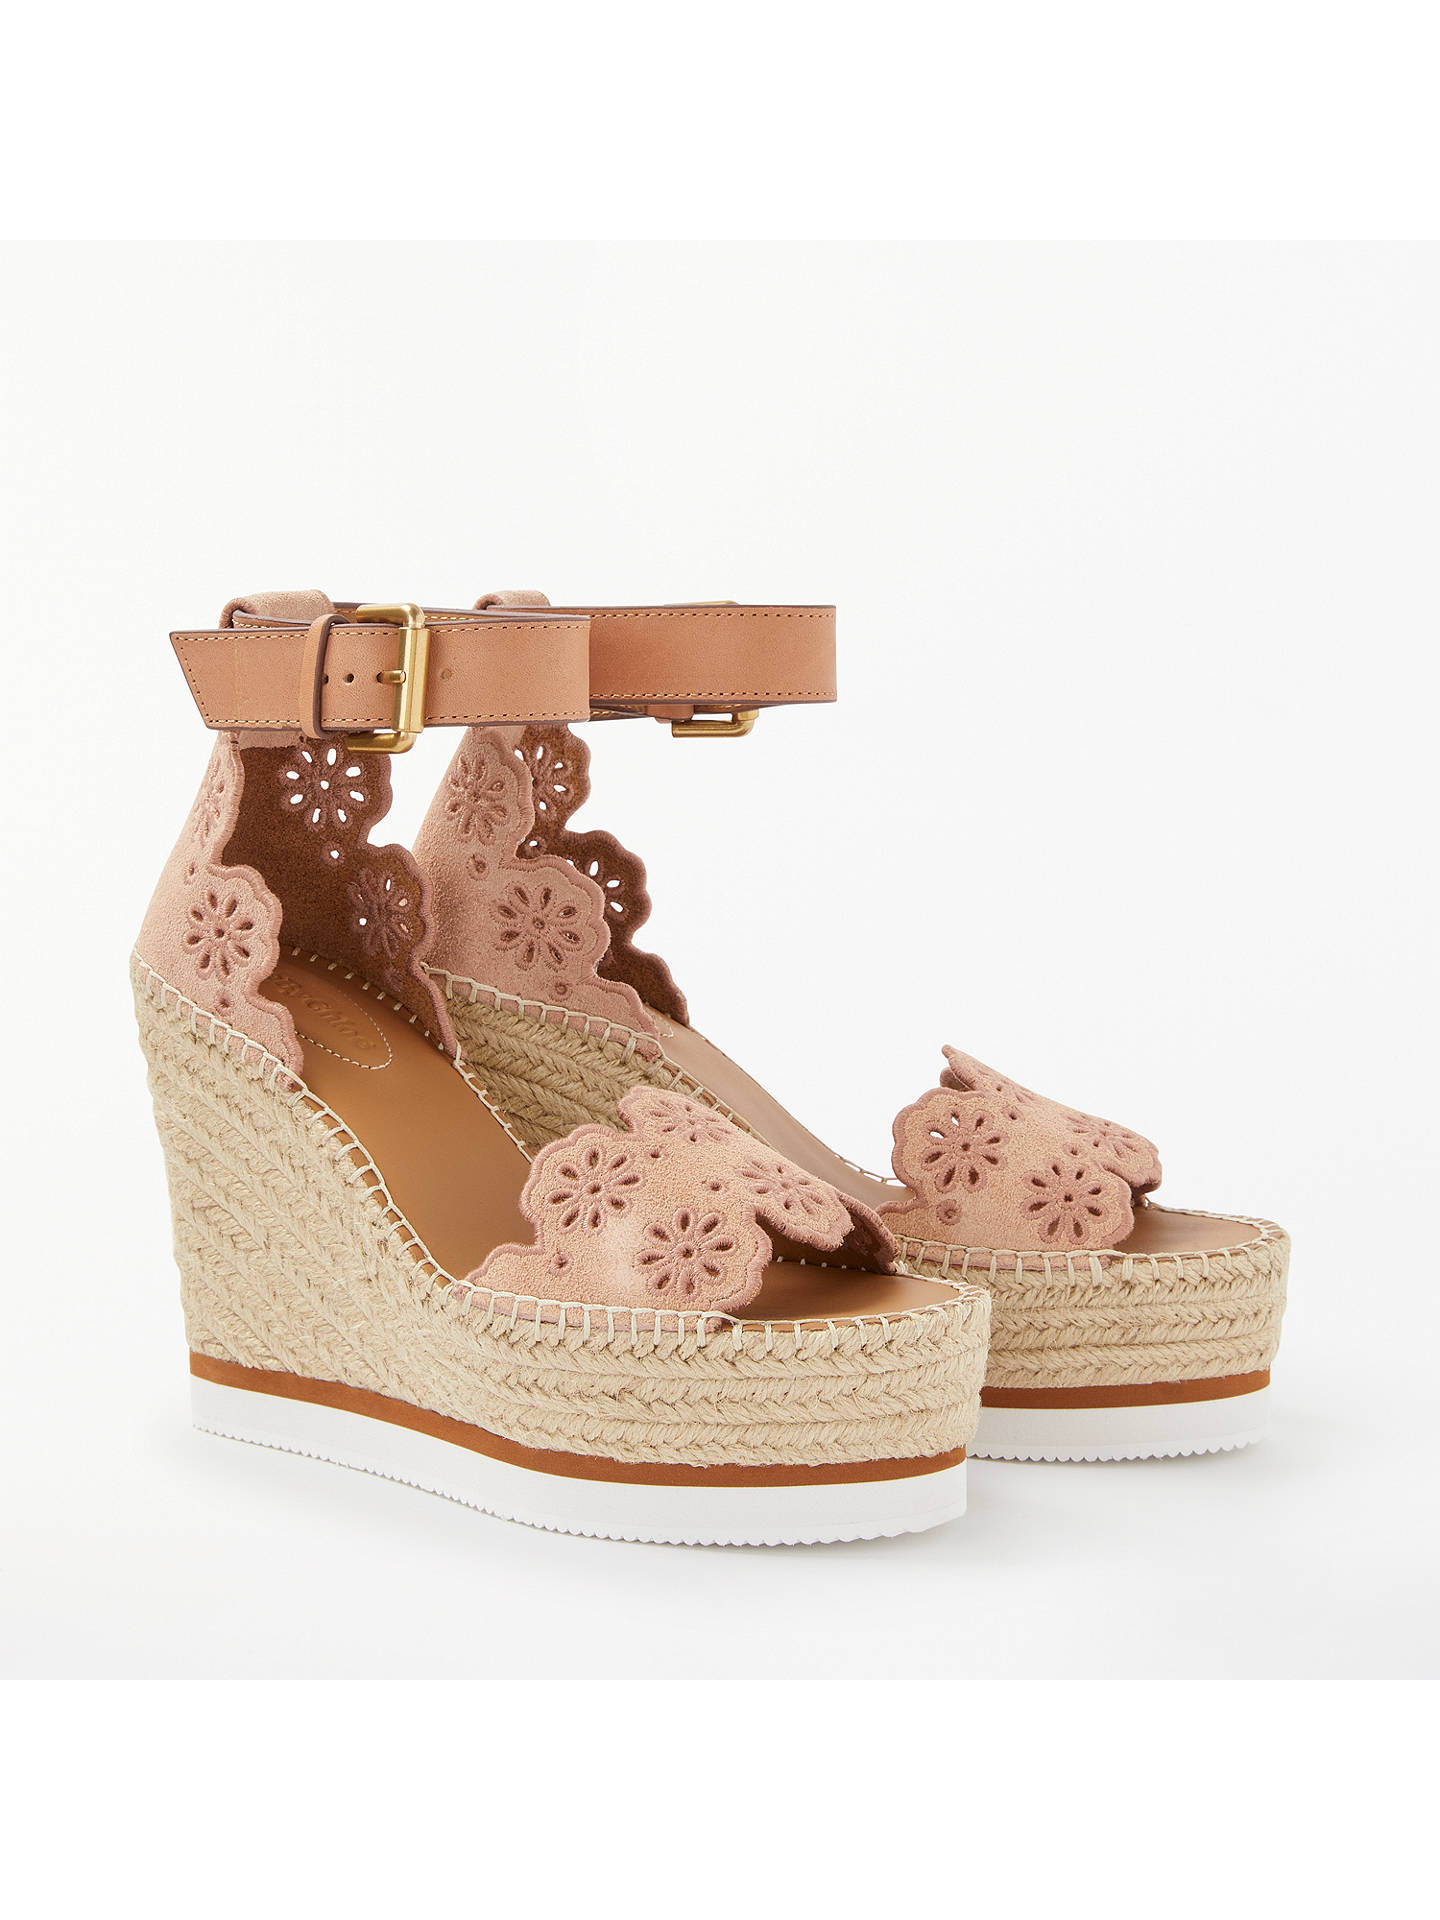 6fdf0398843 Buy See by Chloé Glyn Cut Out Floral Wedge Heel Sandals